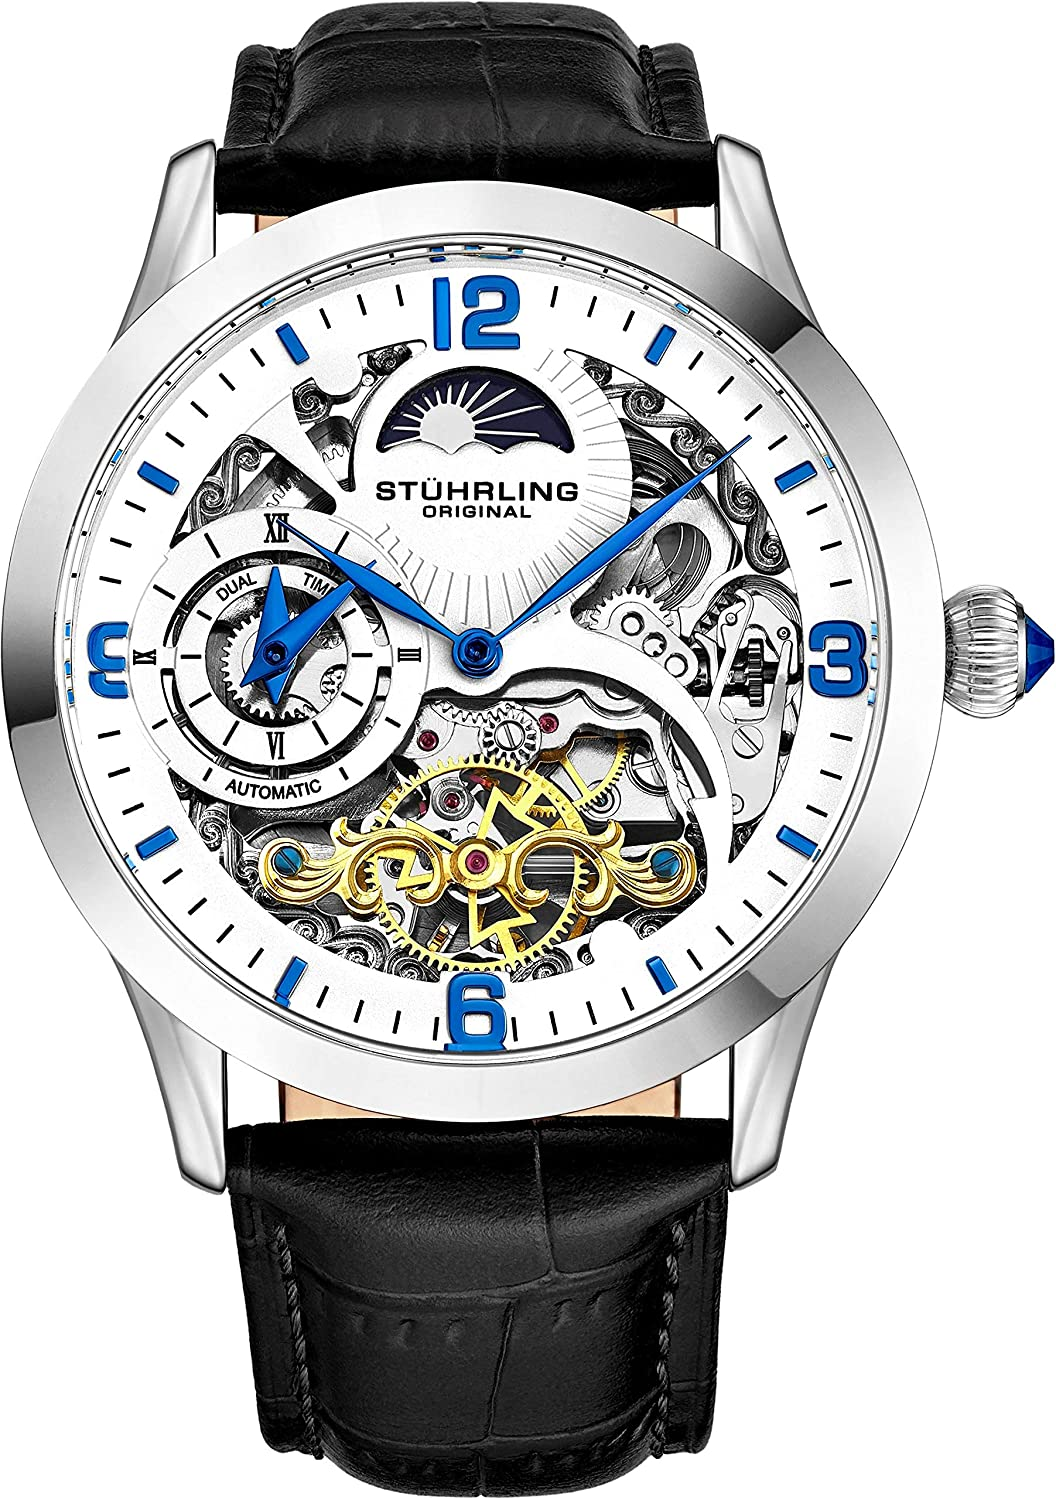 Stührling Original Automatic Watch for Men Skeleton Watch Dial, Dual Time, AMPM Sun Moon, Leather Band, 571 Mens Watches Series